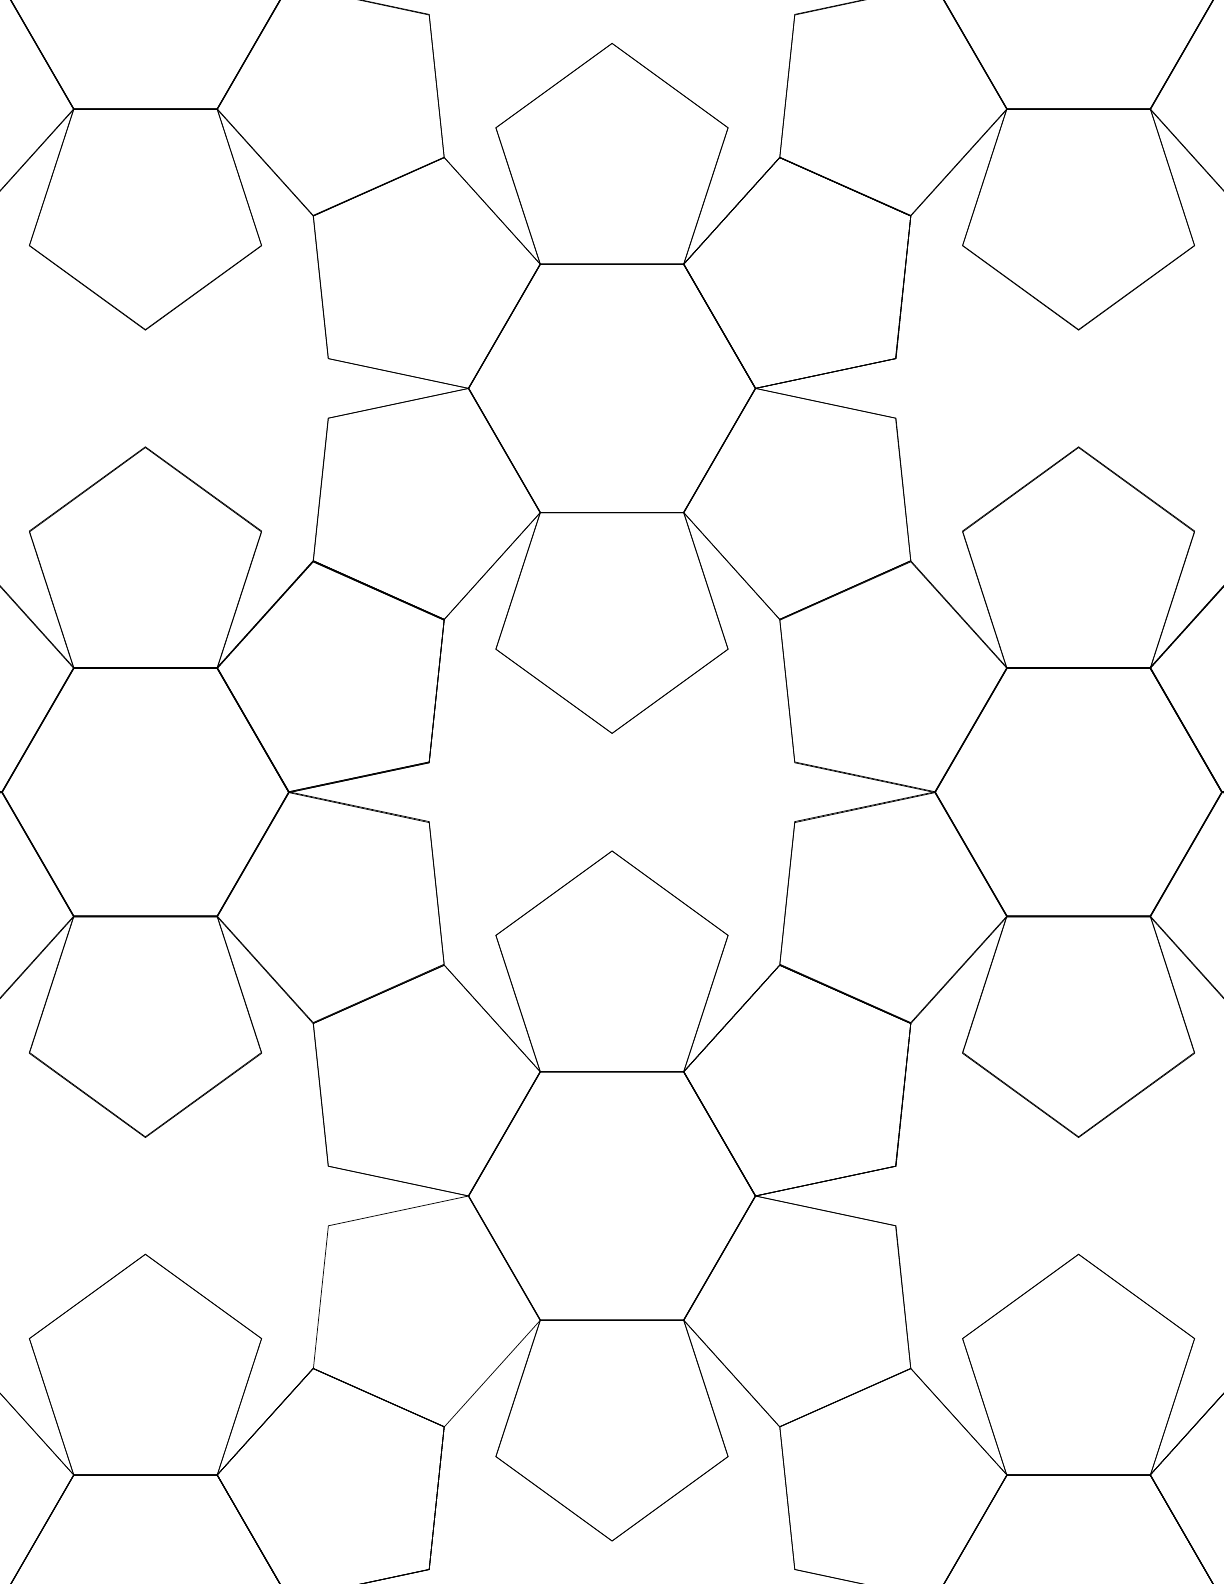 Tiled Pentagons And Hexagons Graph Paper Free Download